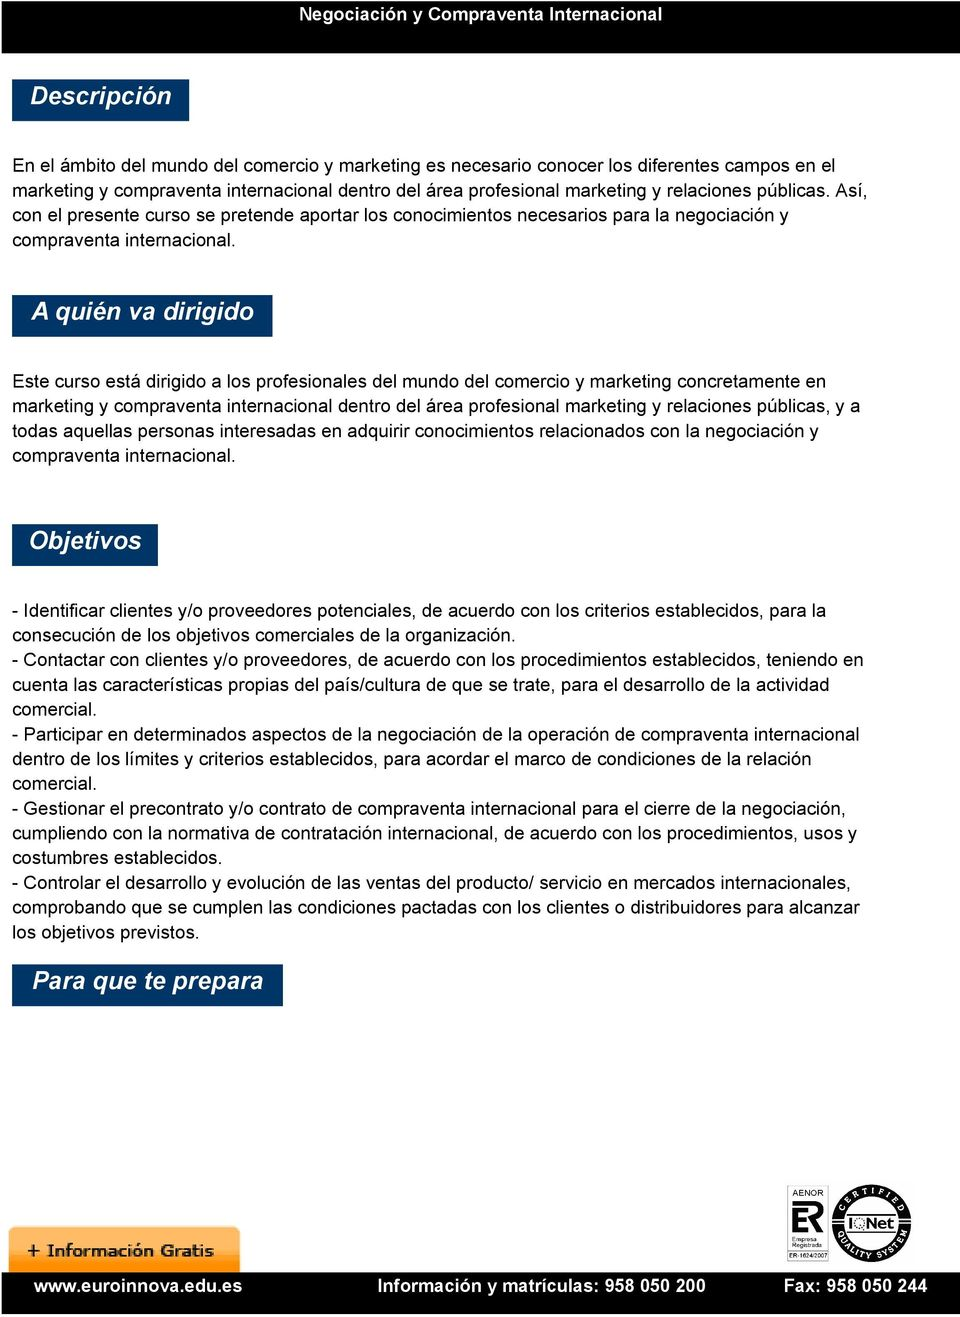 A quién va dirigido Este curso está dirigido a los profesionales del mundo del comercio y marketing concretamente en marketing y compraventa internacional dentro del área profesional marketing y